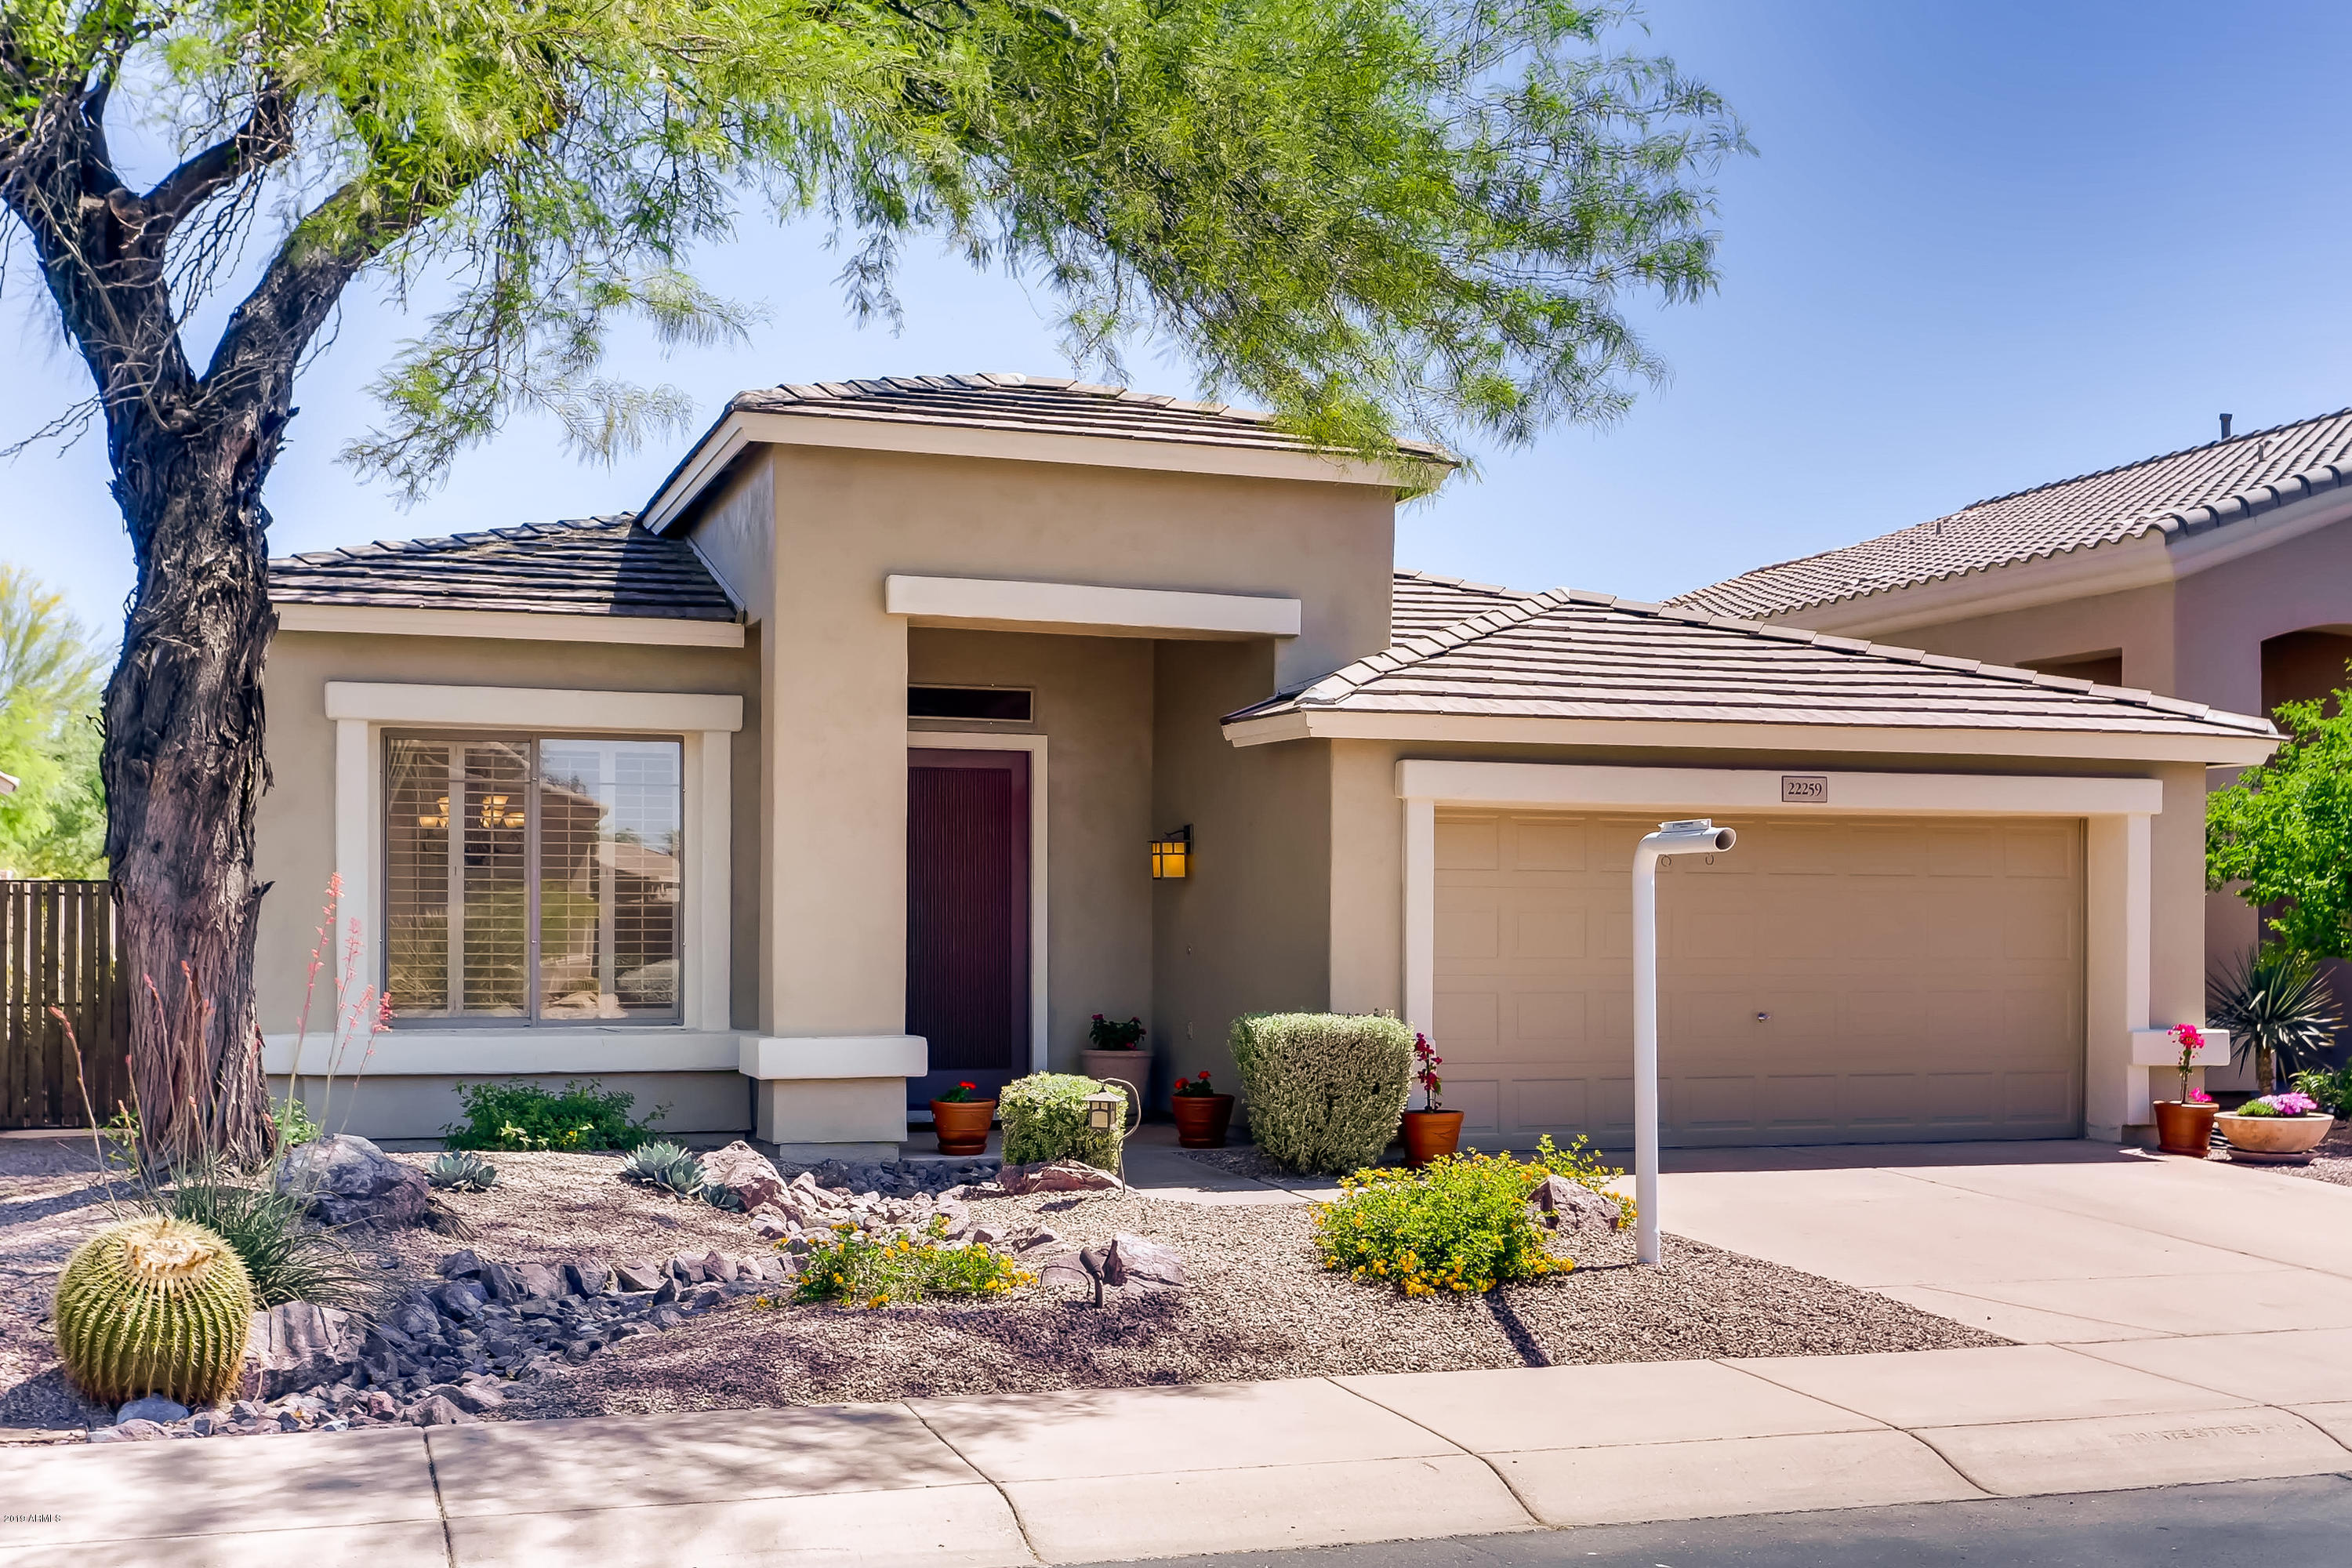 Photo for 22259 N 51st Street, Phoenix, AZ 85054 (MLS # 5911961)